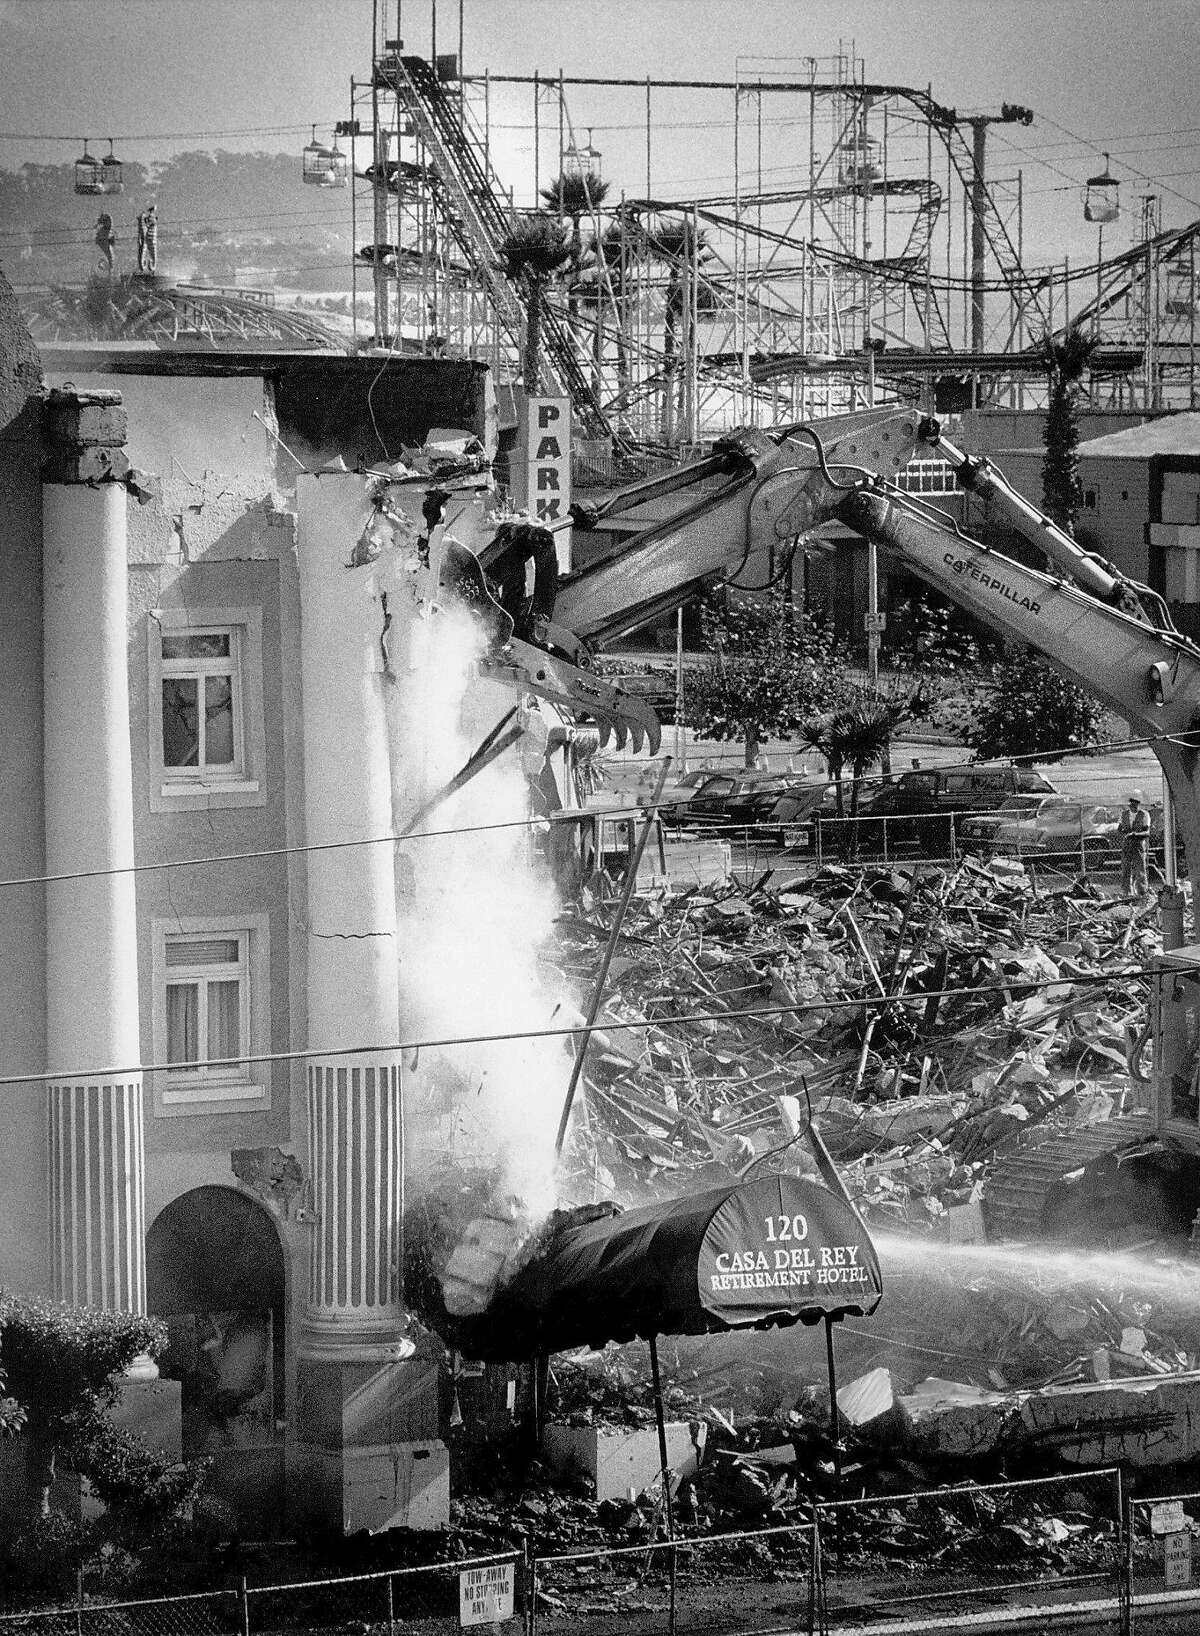 The Casa Del Rey retirement hotel in Santa, Cruz was demolished after damage suffered in the Loma Prieta earthquake, October 17, 1989.